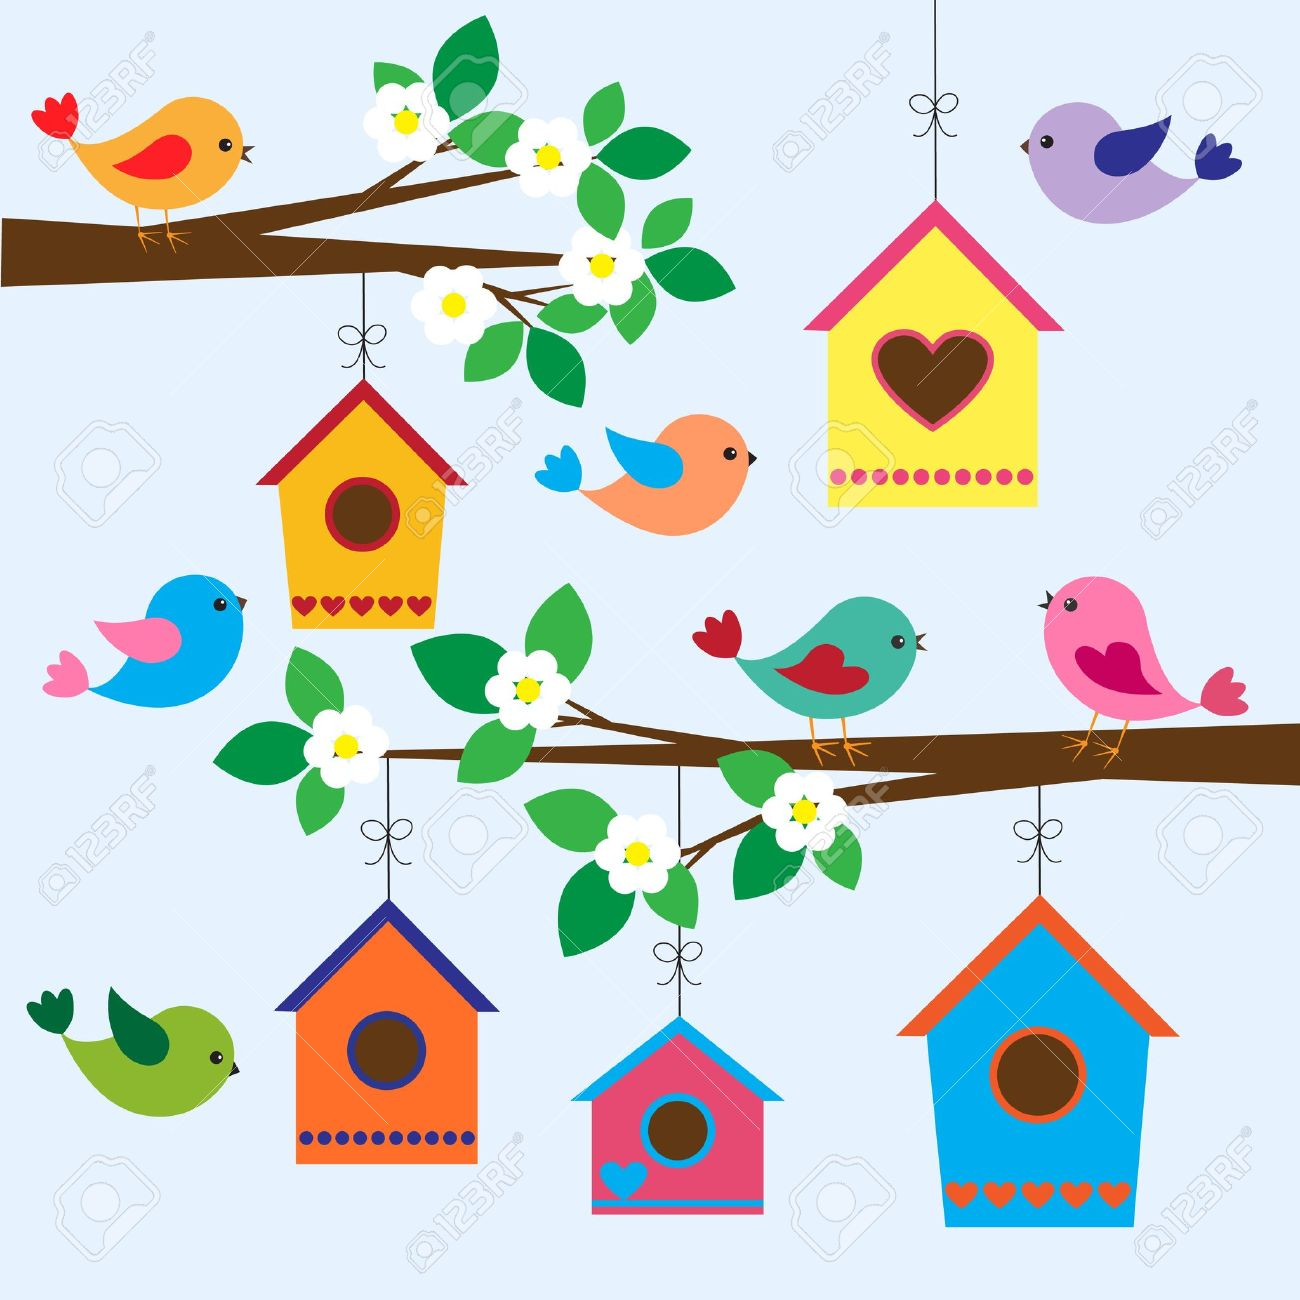 colorful birds and birdhouses in spring royalty free cliparts rh 123rf com birdhouse clip art free birdhouse clipart free